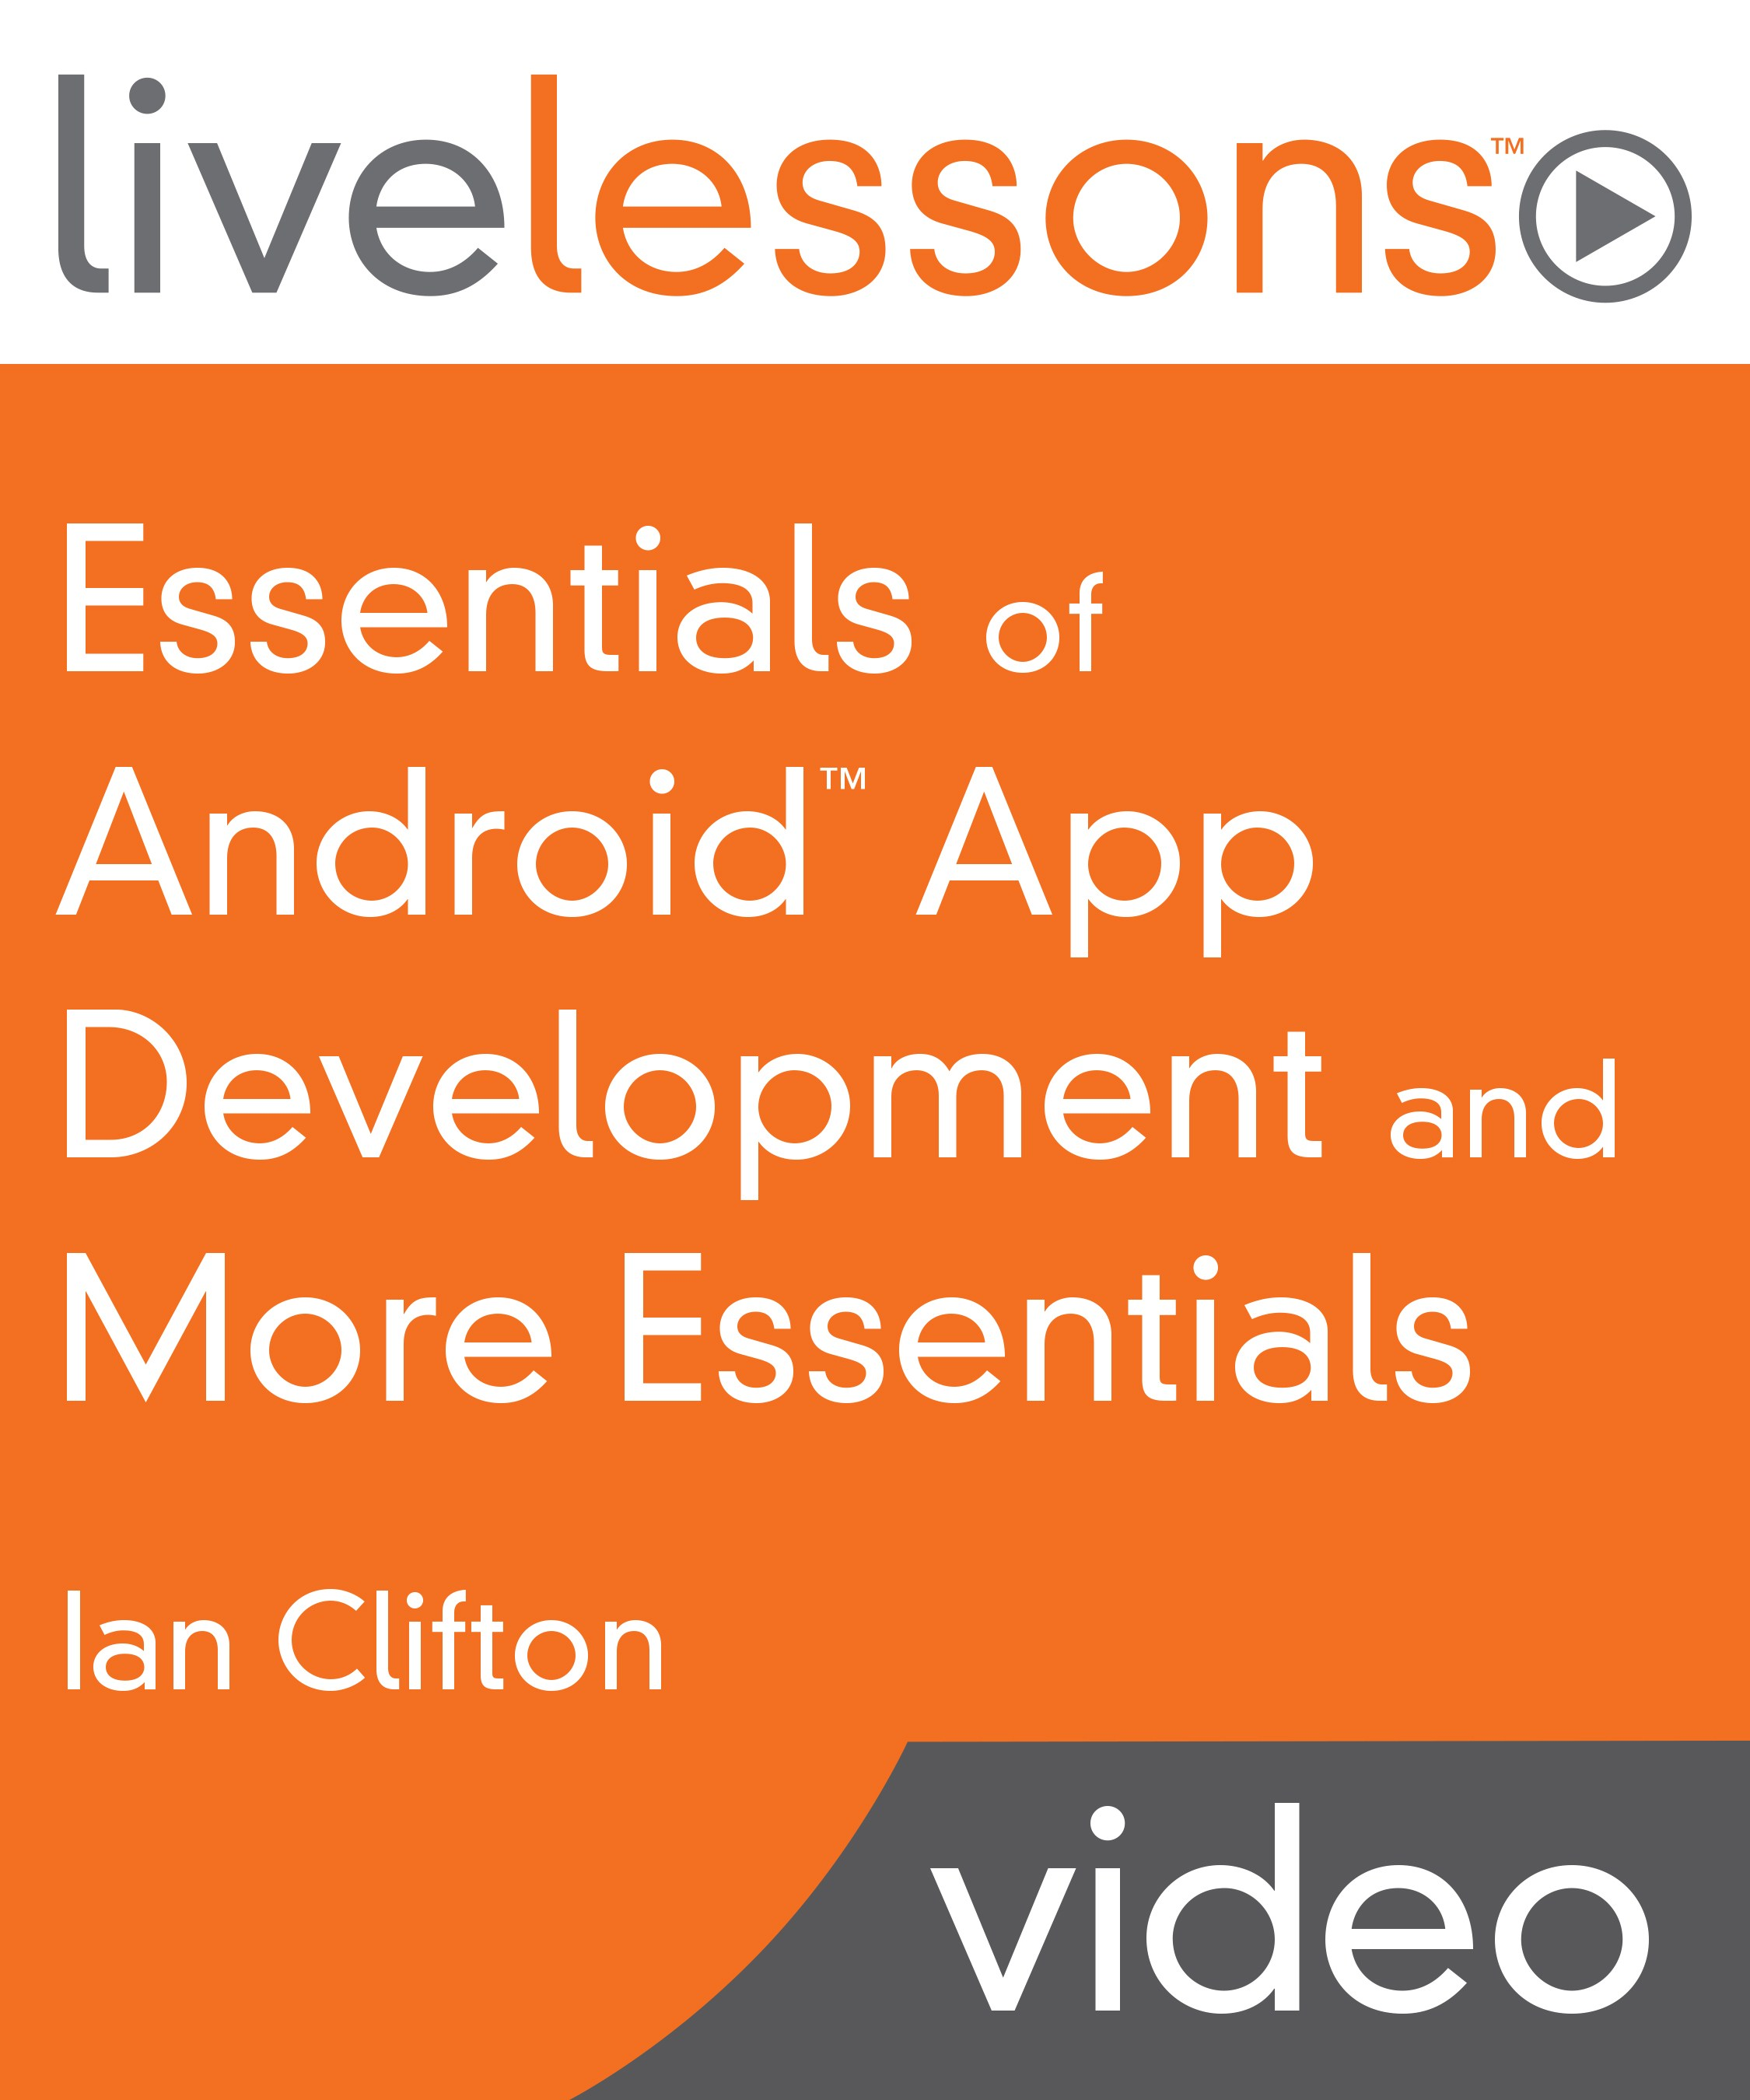 Essentials of Android App Development and More Essentials